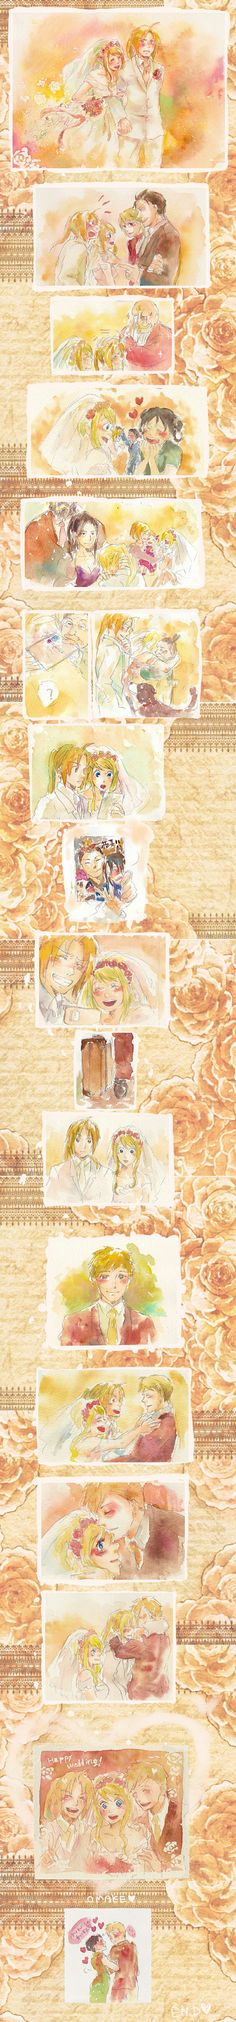 Ed and Winry wedding day OH THE KAWAIINESS!!!!!!!!!!!❤️❤️❤️❤️❤️❤️❤️❤️❤️